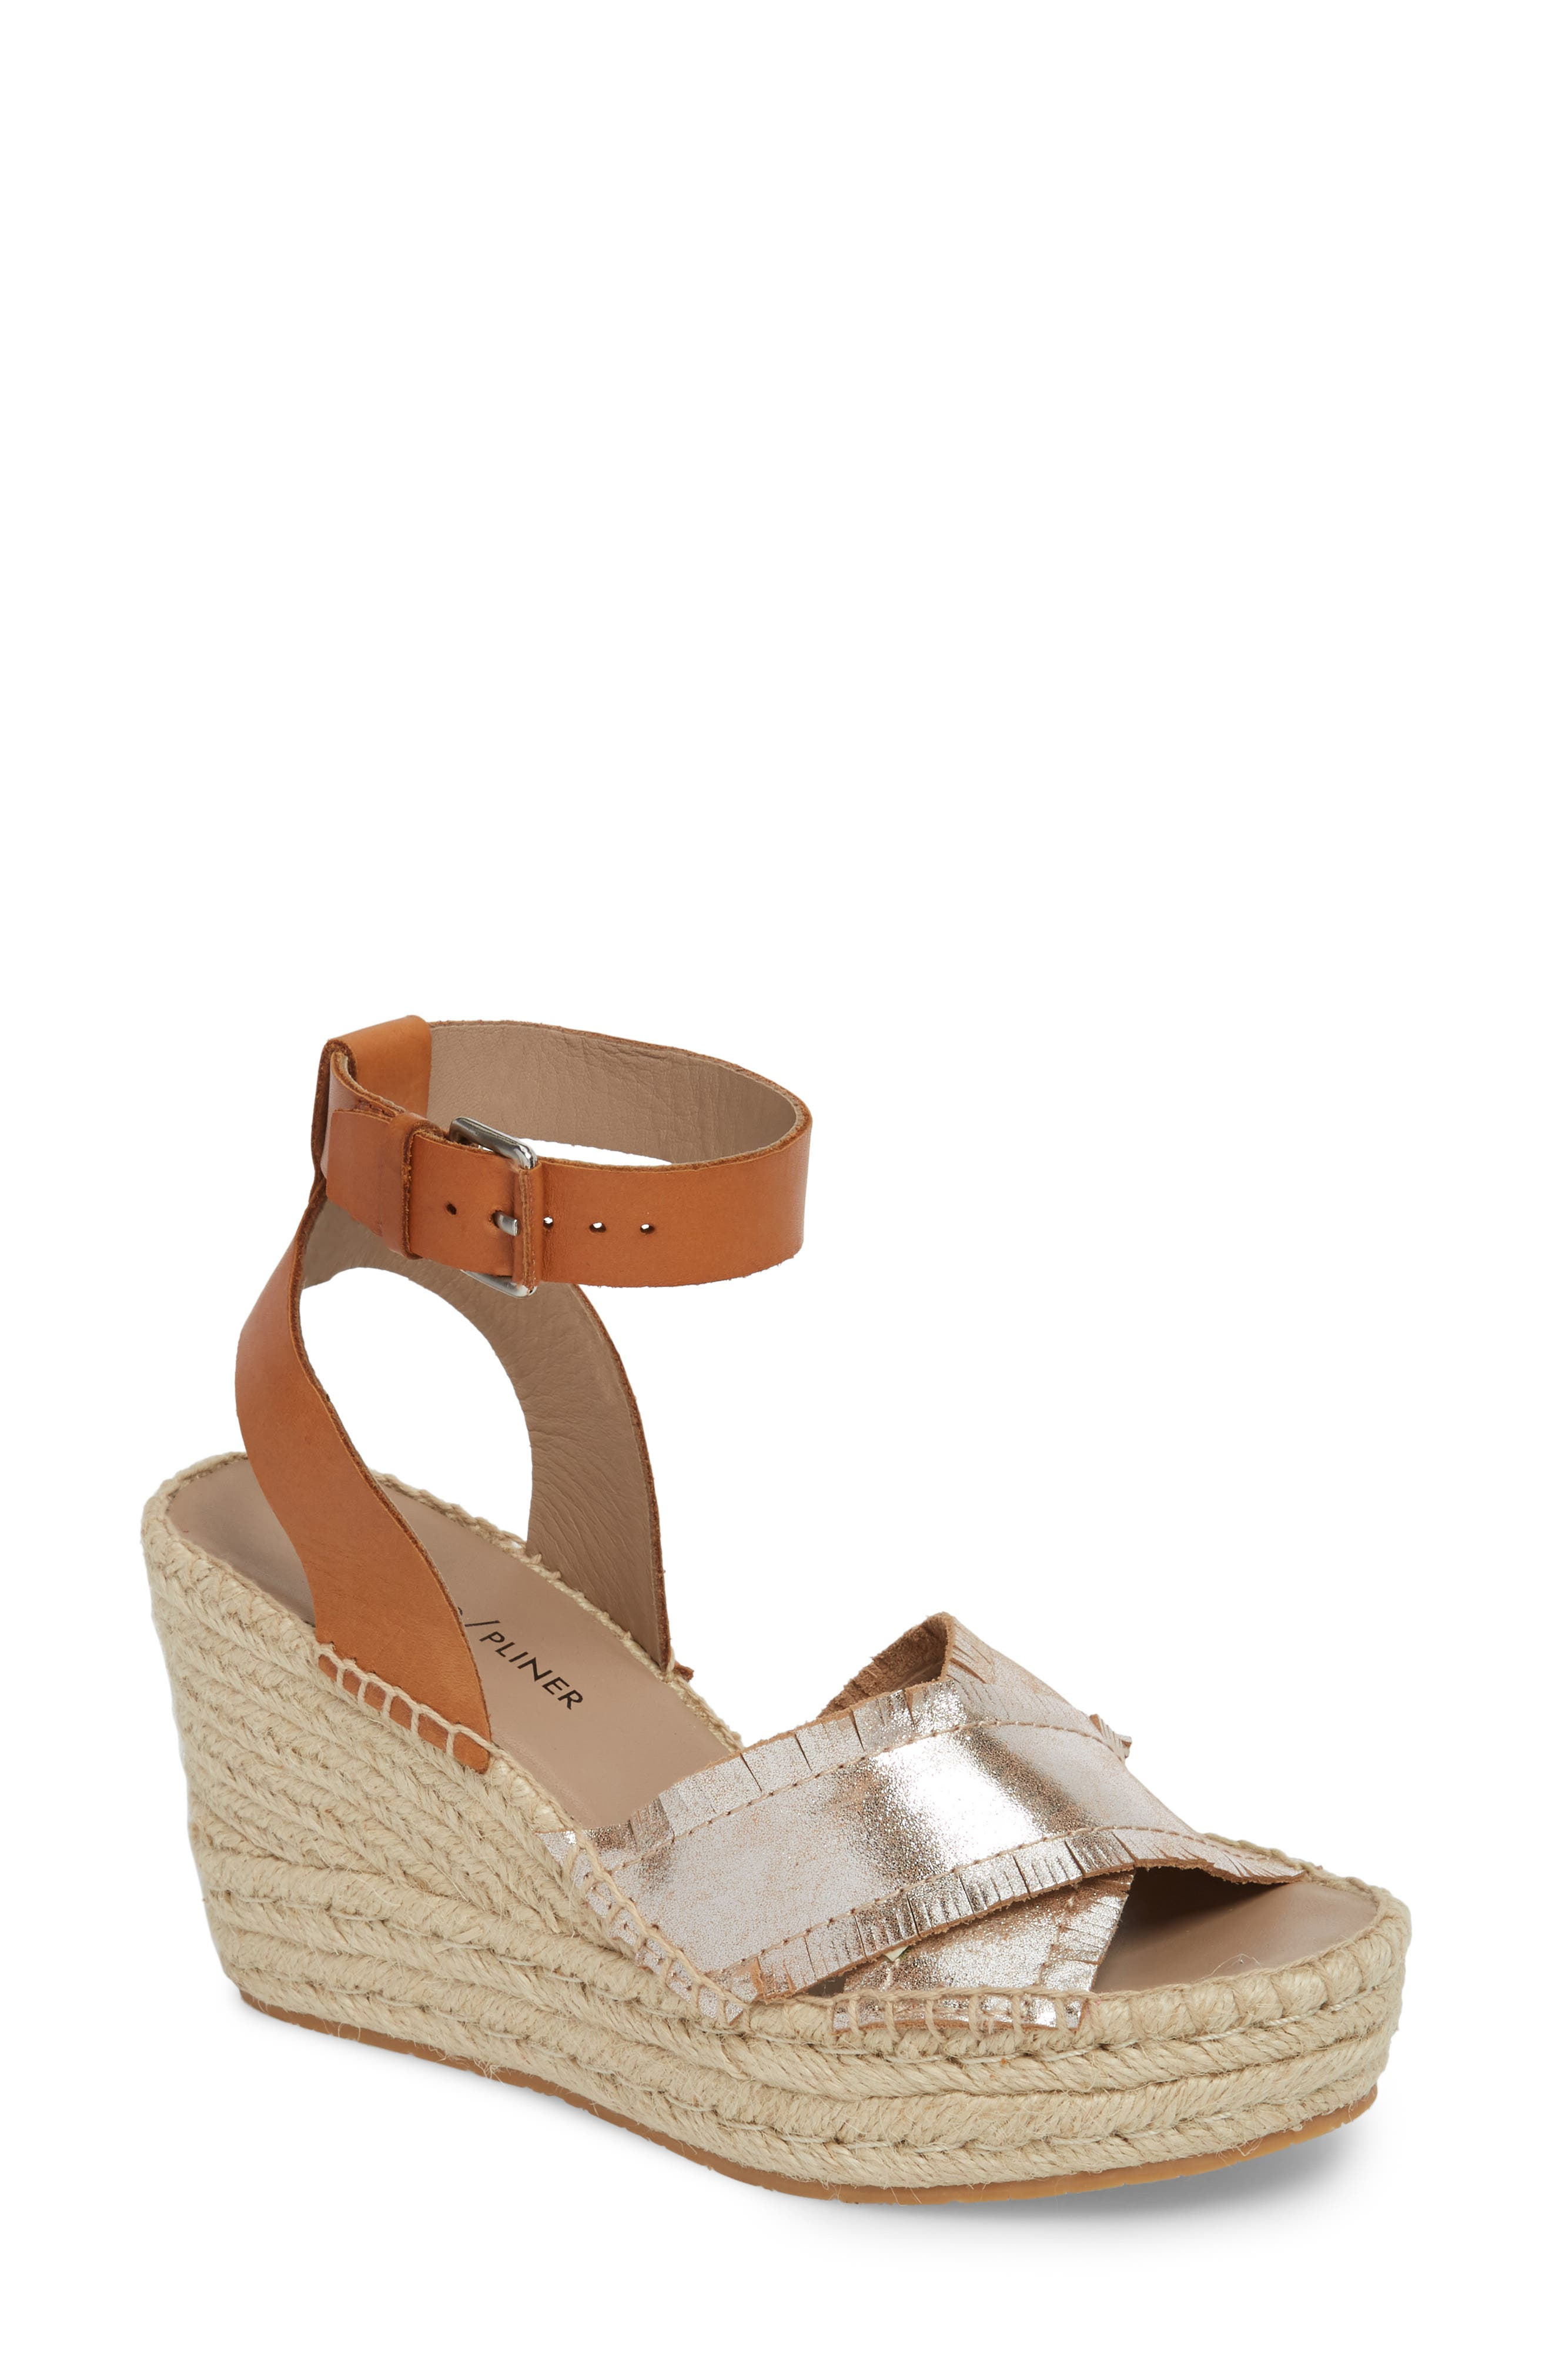 Ines Espadrille Wedge Sandal,                             Main thumbnail 1, color,                             041